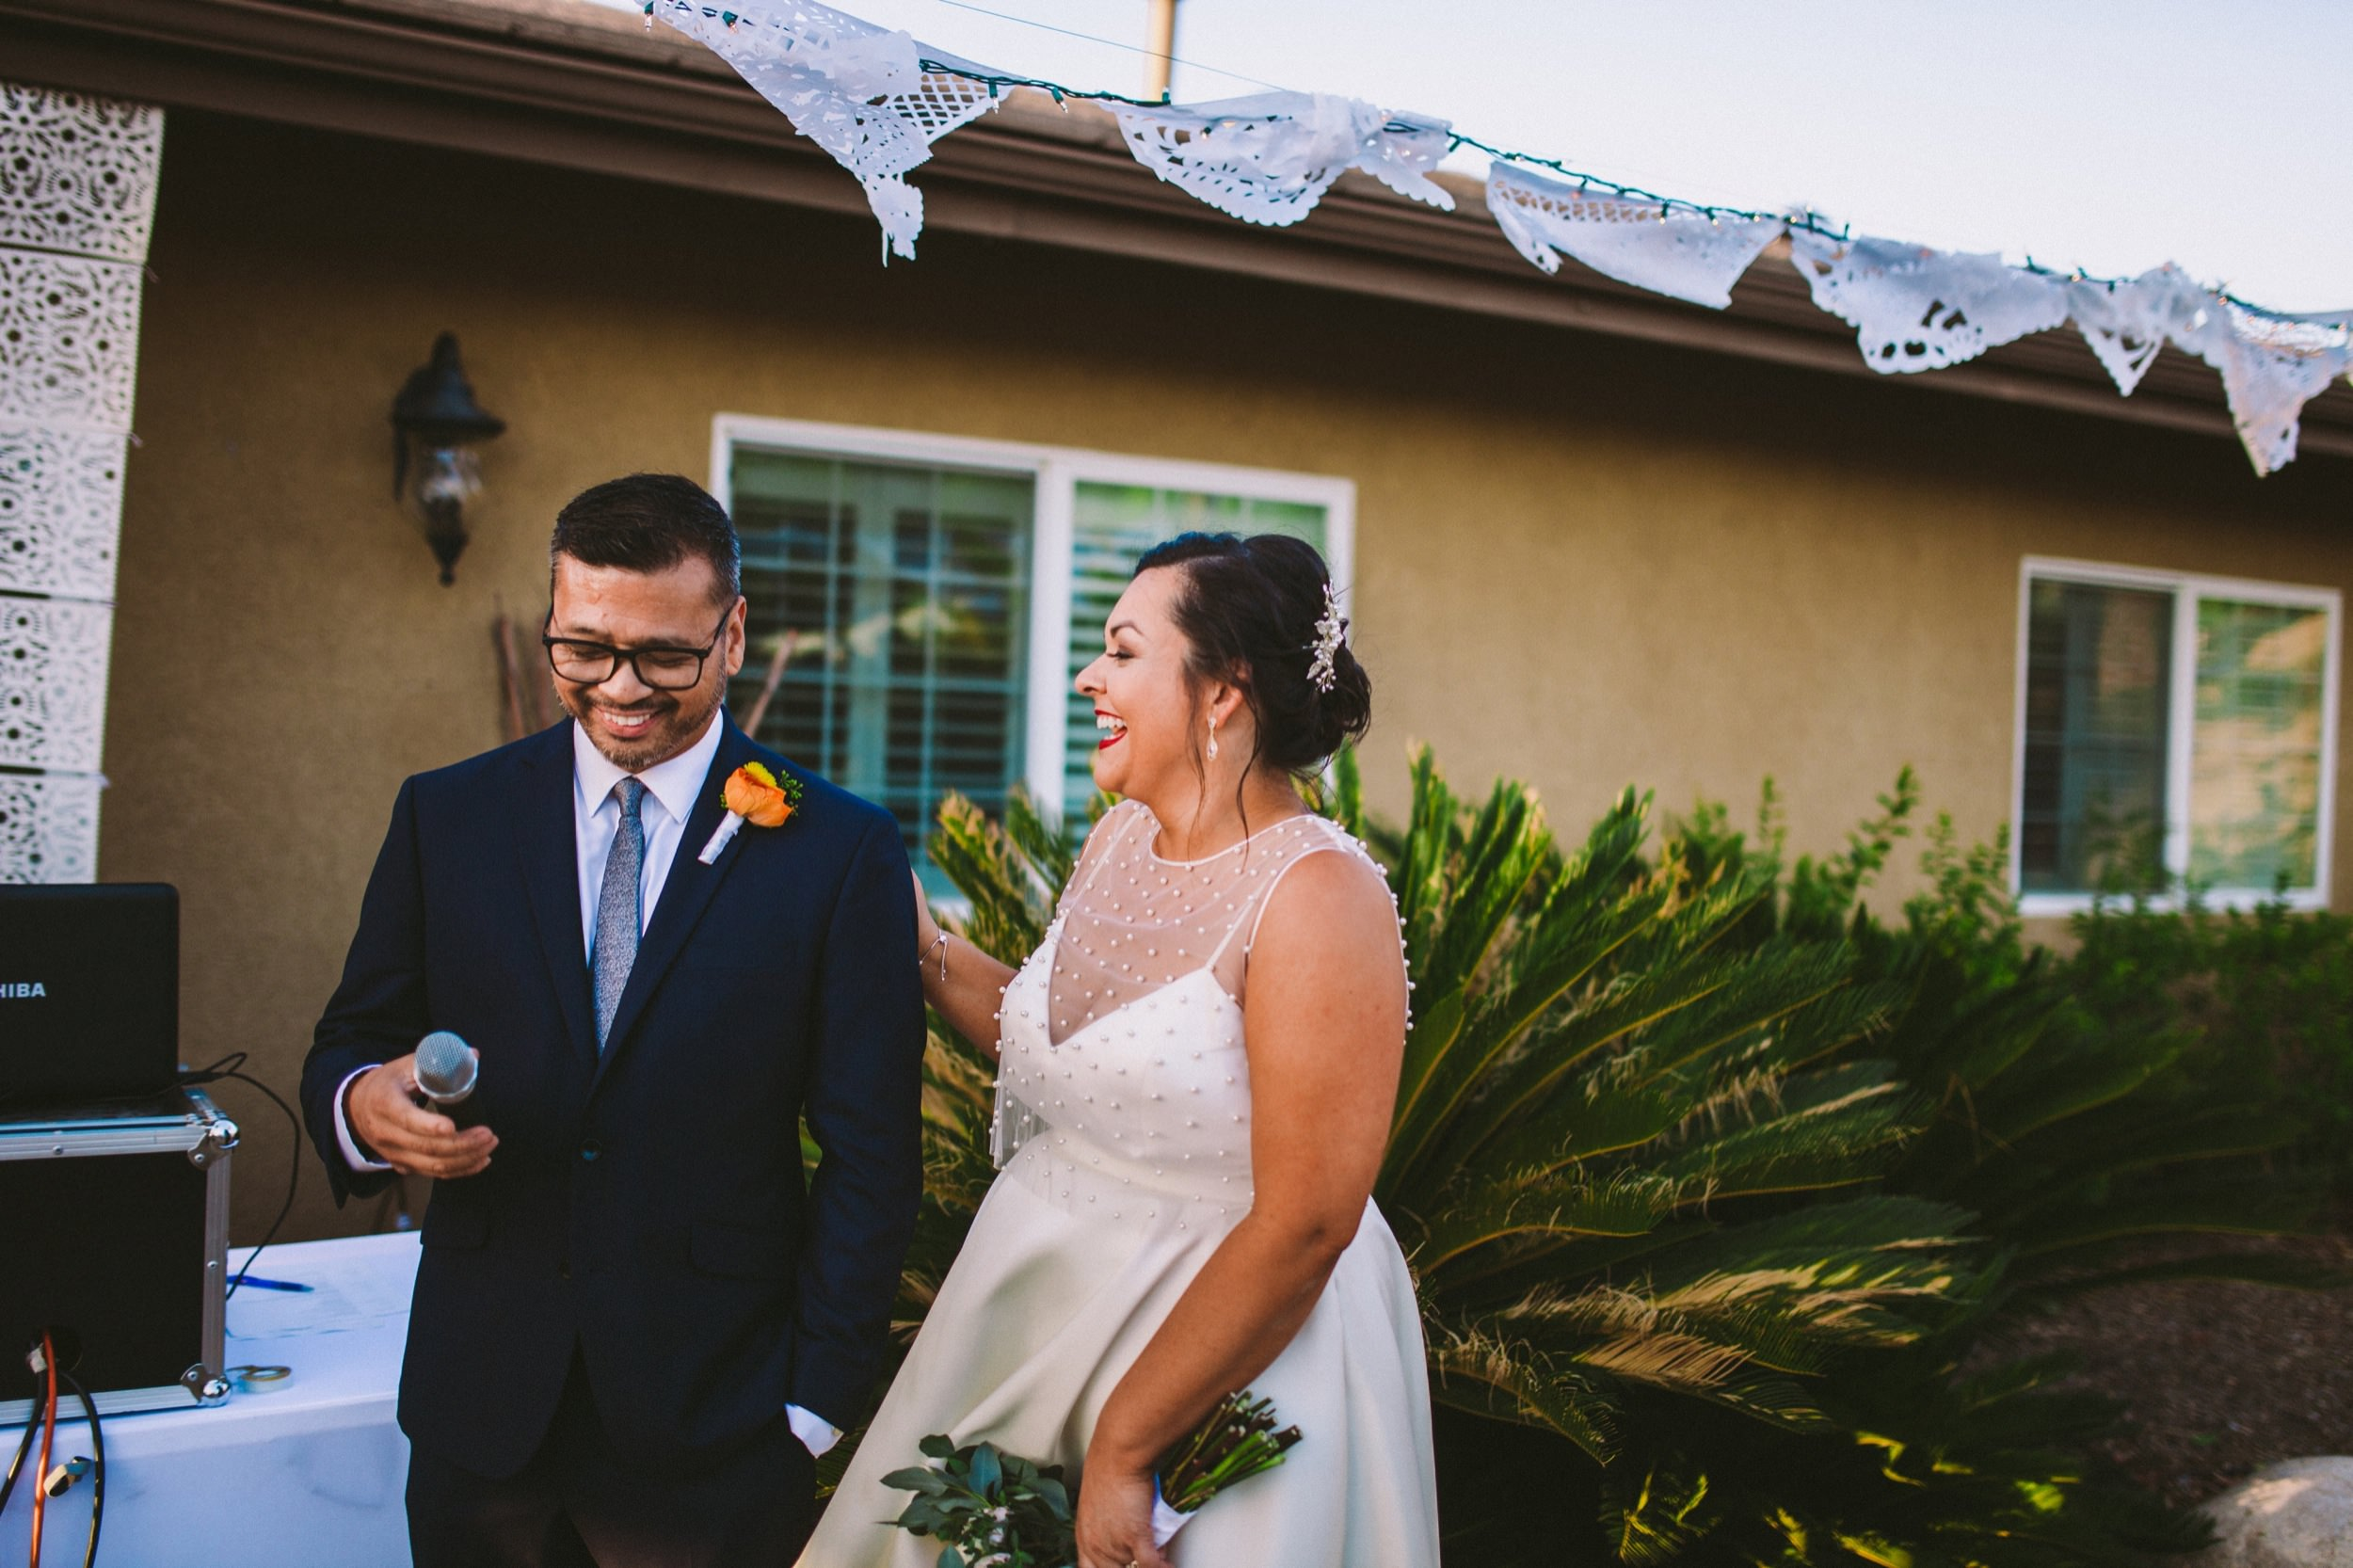 Intimate, Relaxed & Colorful Wedding Photography in Temecula-361.jpg